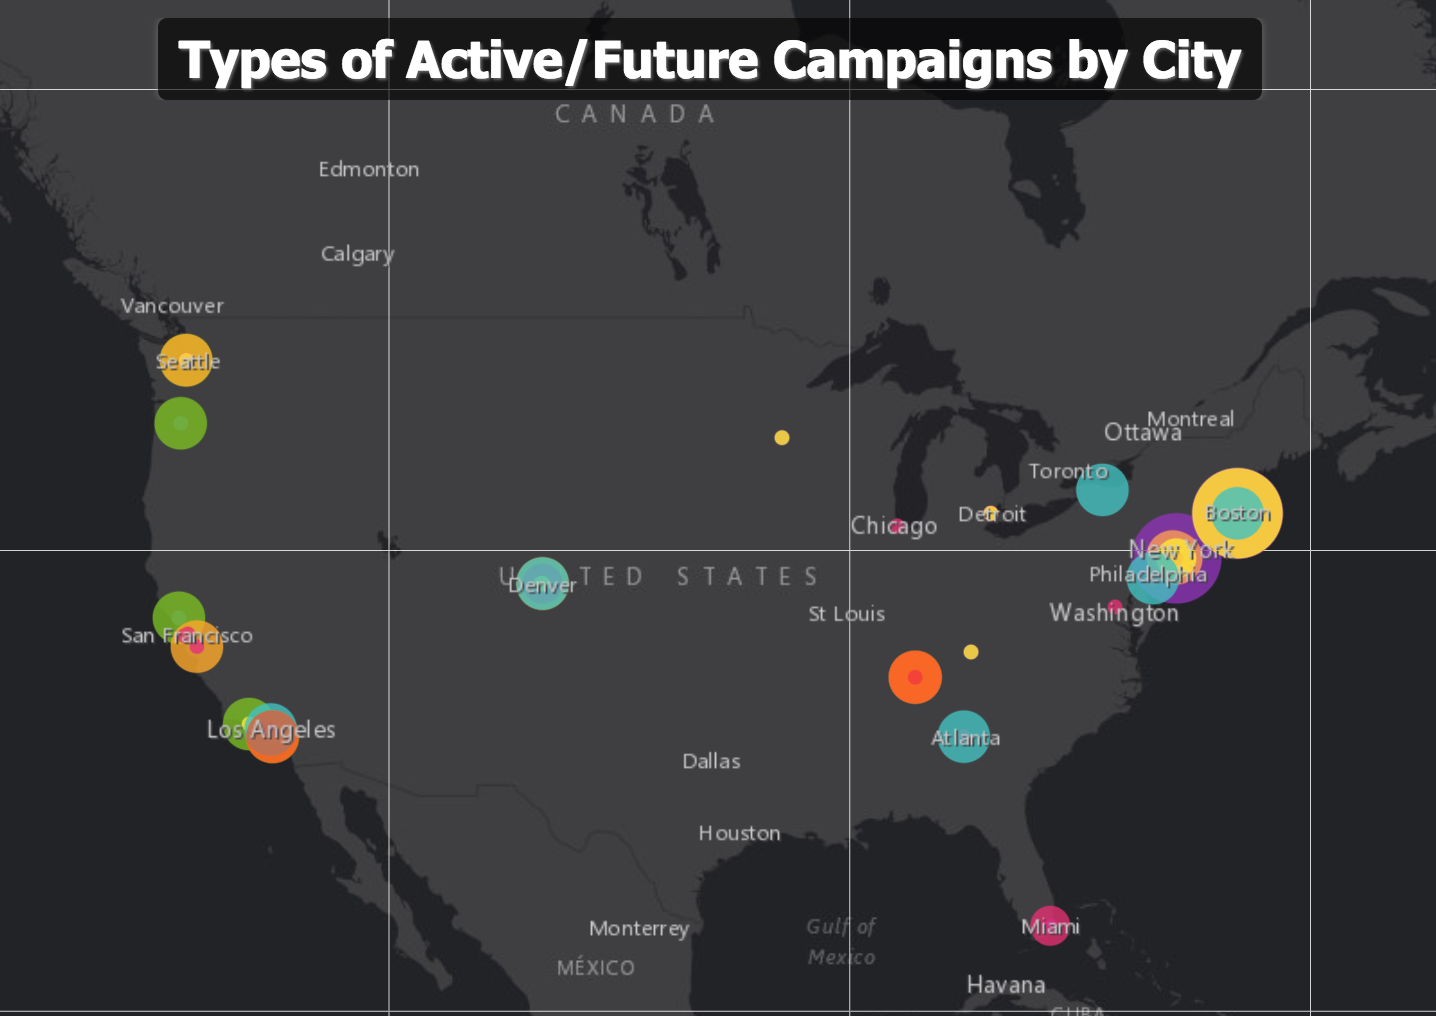 Themes of Active/Future campaigns being run by HFA member groups based on their city/information collected in HFA member census. Coral is Building-Based Justice, teal is Community Control, yellow is Renters' Rights, pink is Development Without Displacement, Orange is Discrimination in Housing, green is Just Cause Eviction, blue is Rent Control, tangerine is Right to Counsel, and purple is Tenant Unions. Important to note that approximately 40 groups out of HFA's 100+ member group network filled out the member census.